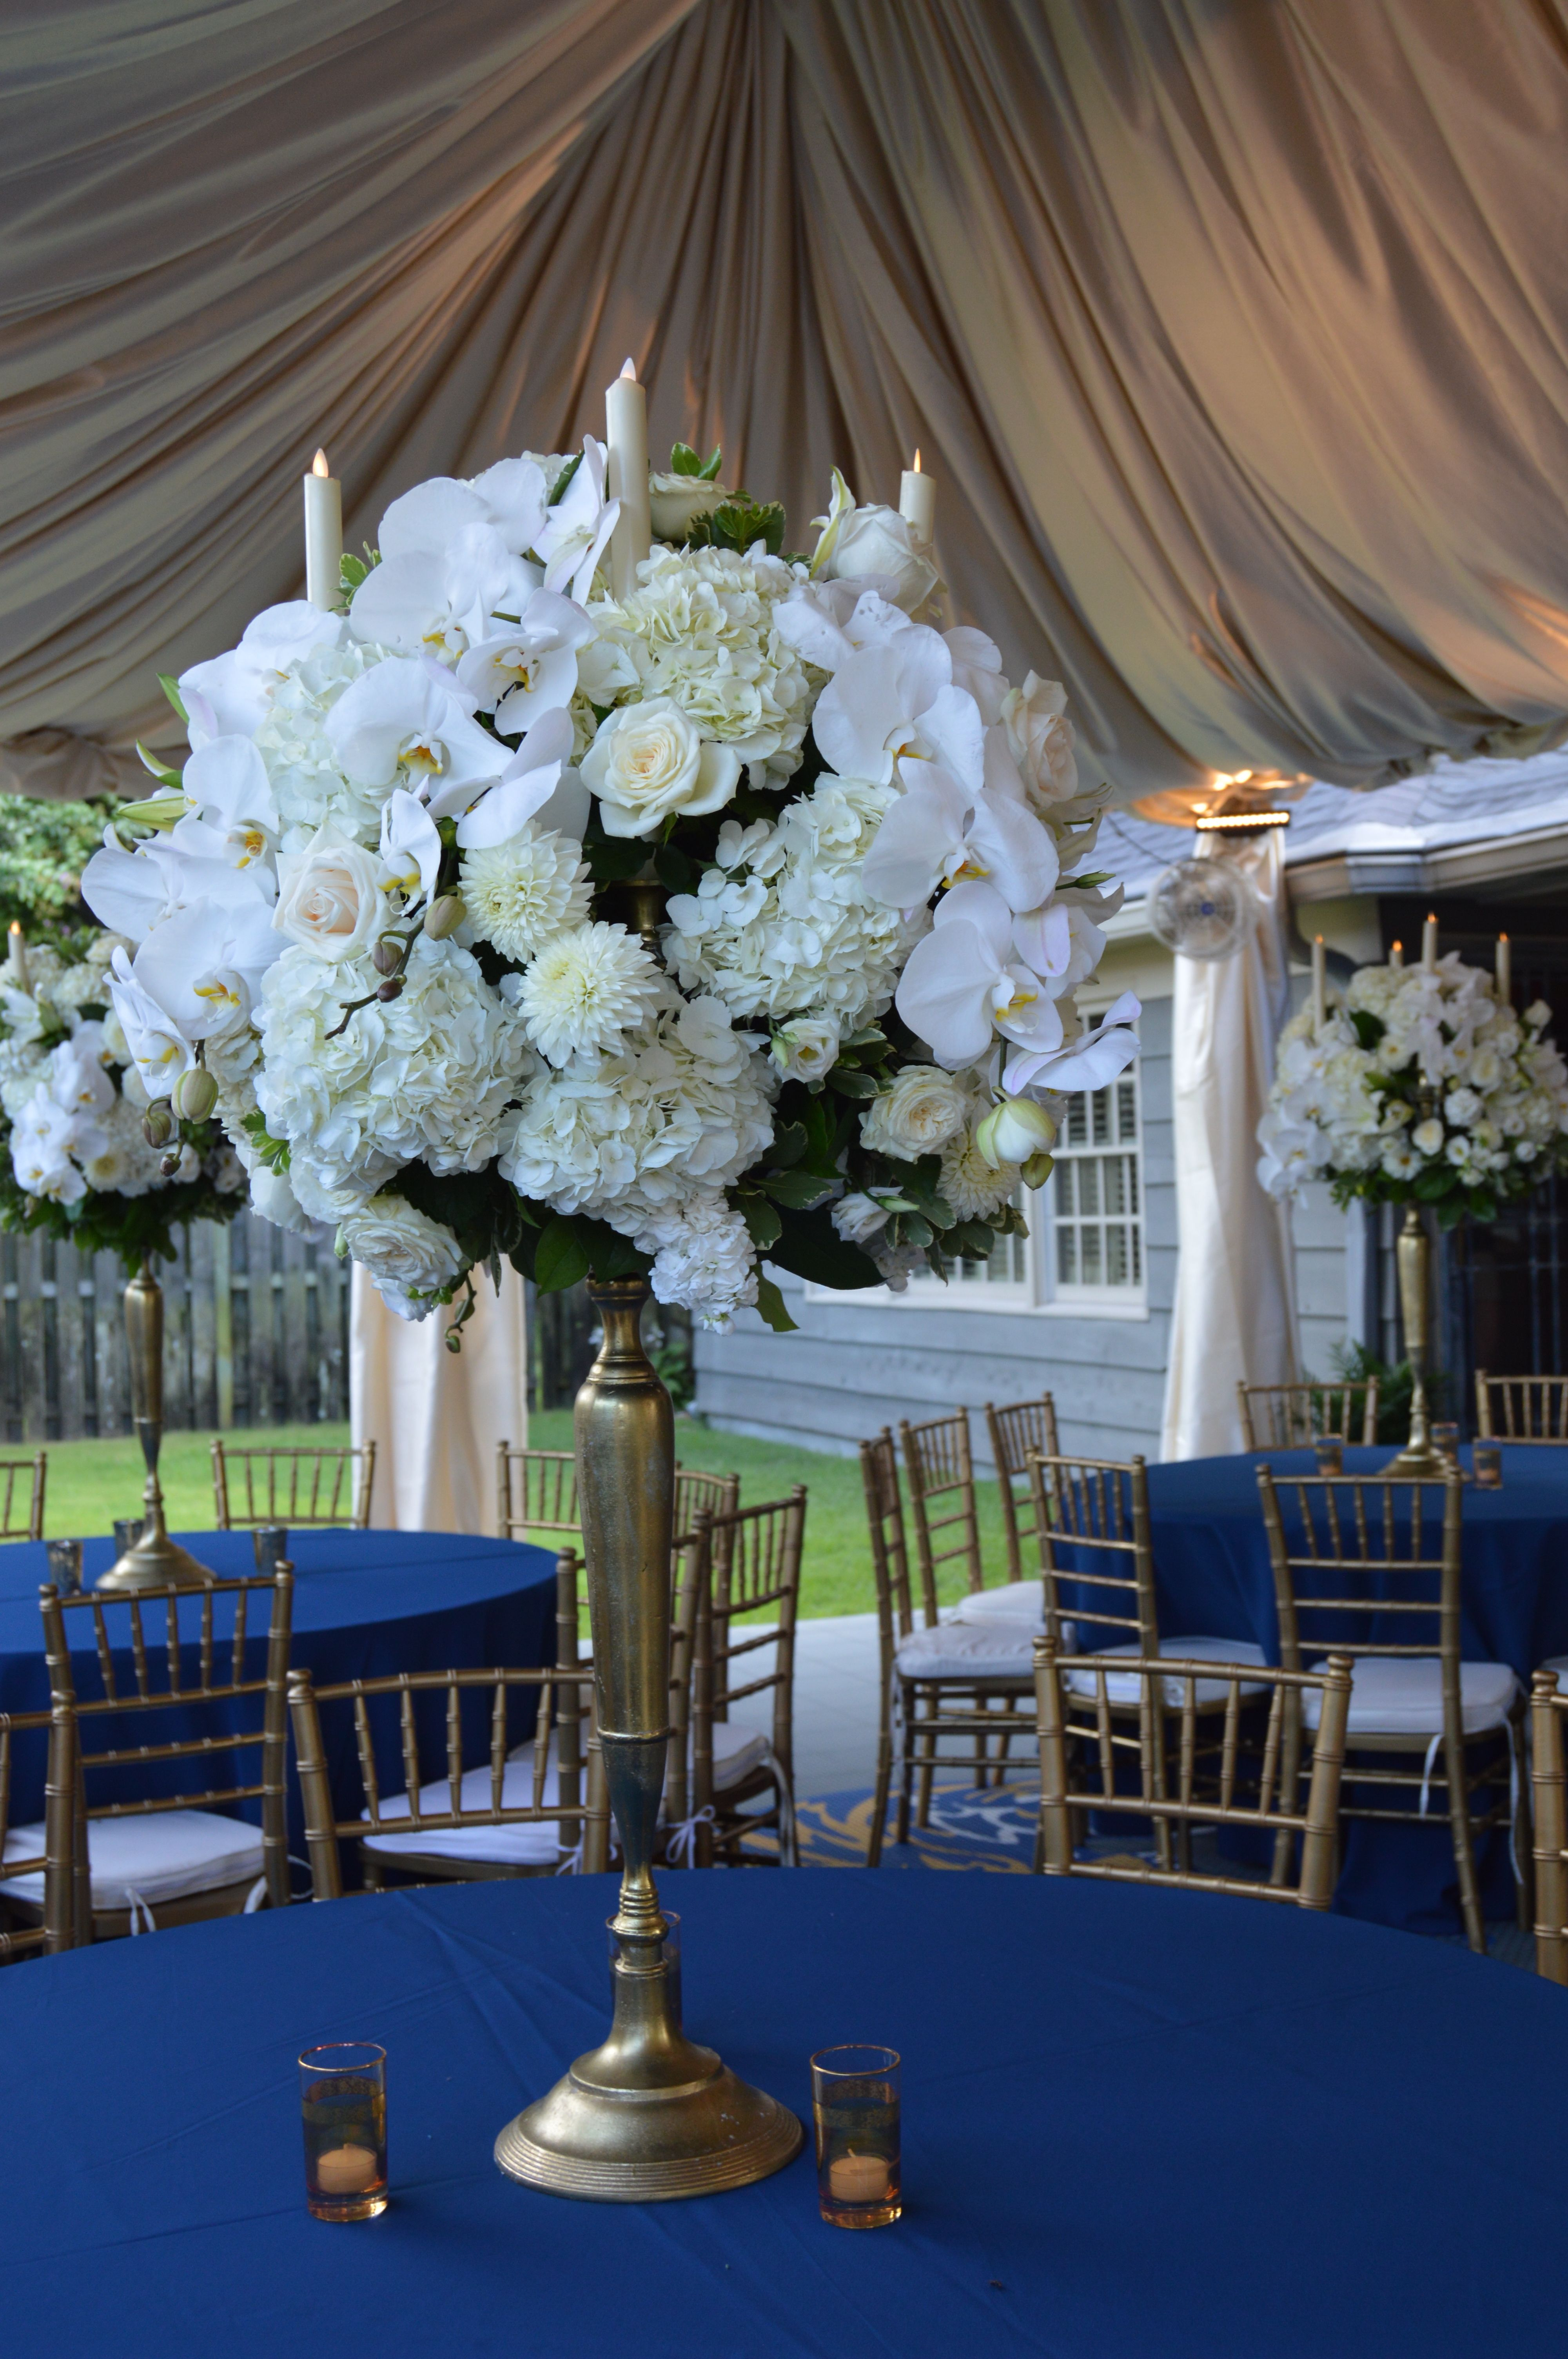 Opulent golden candelabra arrangements with phalenopsis orchids, white roses, hydrangea, dahlias and taper candles.